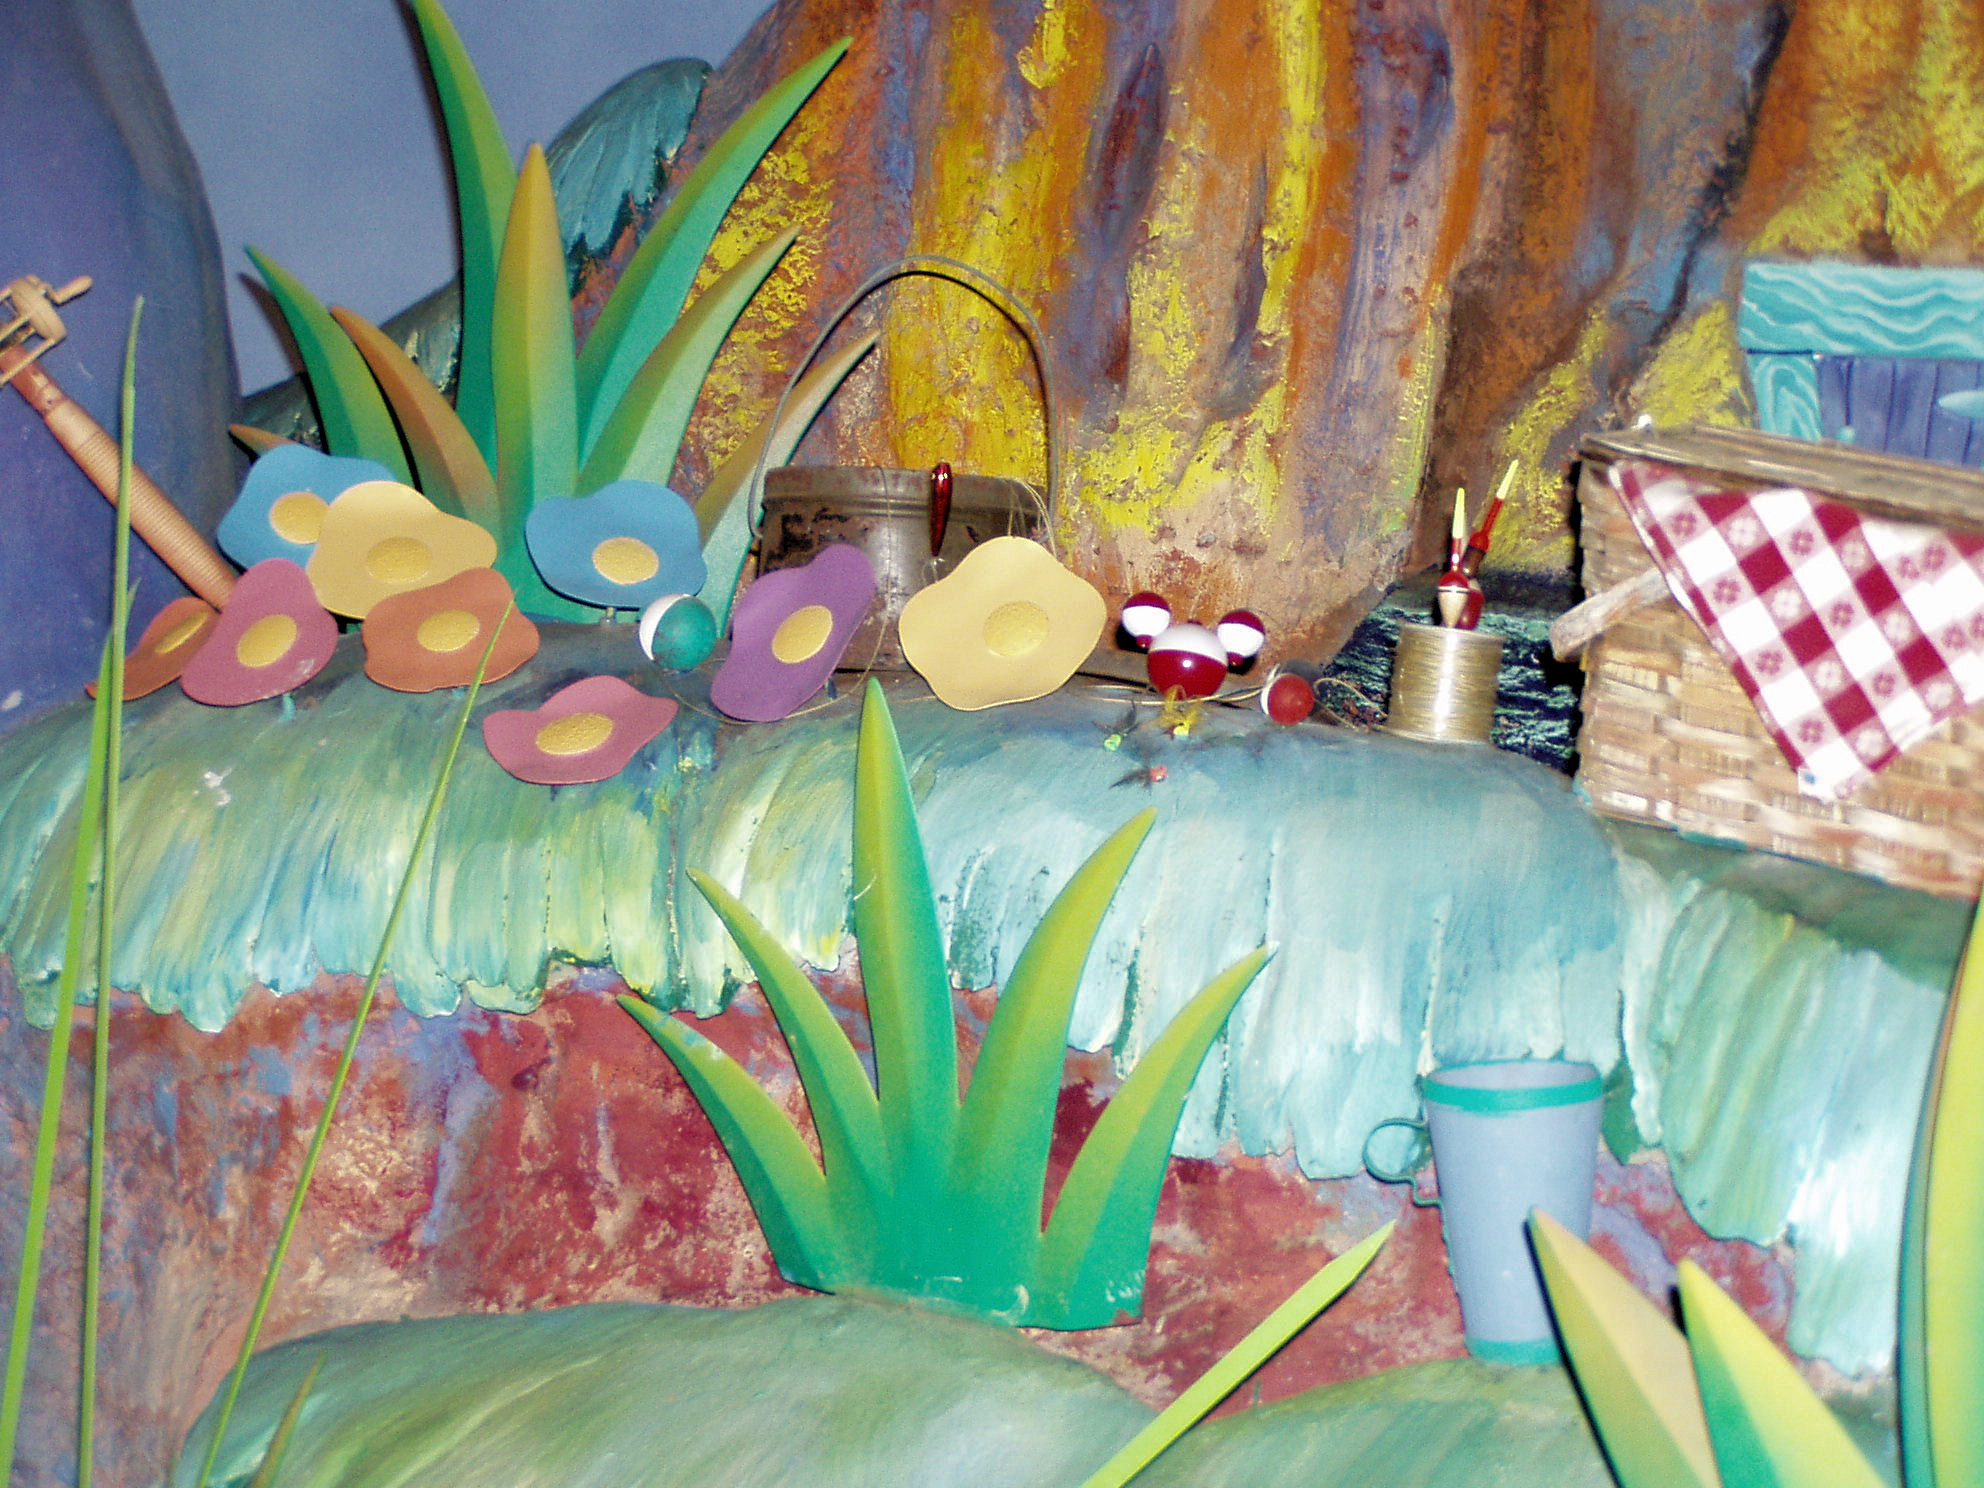 A Hidden Mickey inside Splash Mountain at the Magic Kingdom at Disney World.